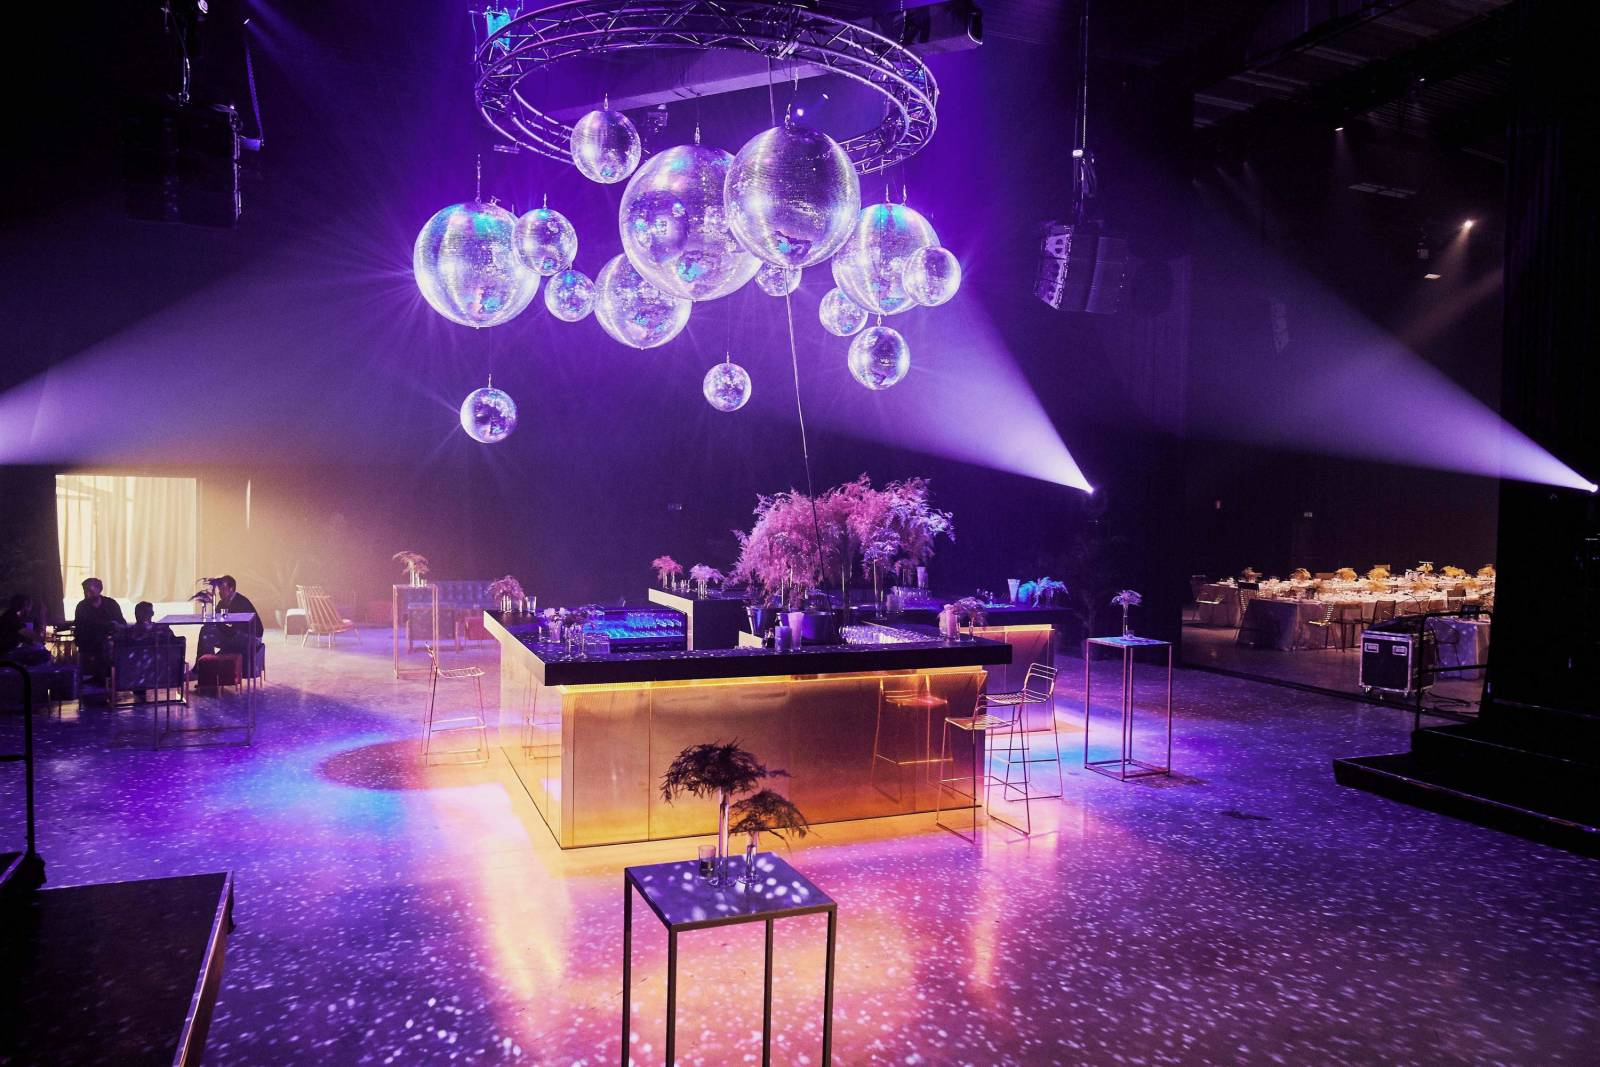 Docks Dome - Eventlocatie - House of Events - 26